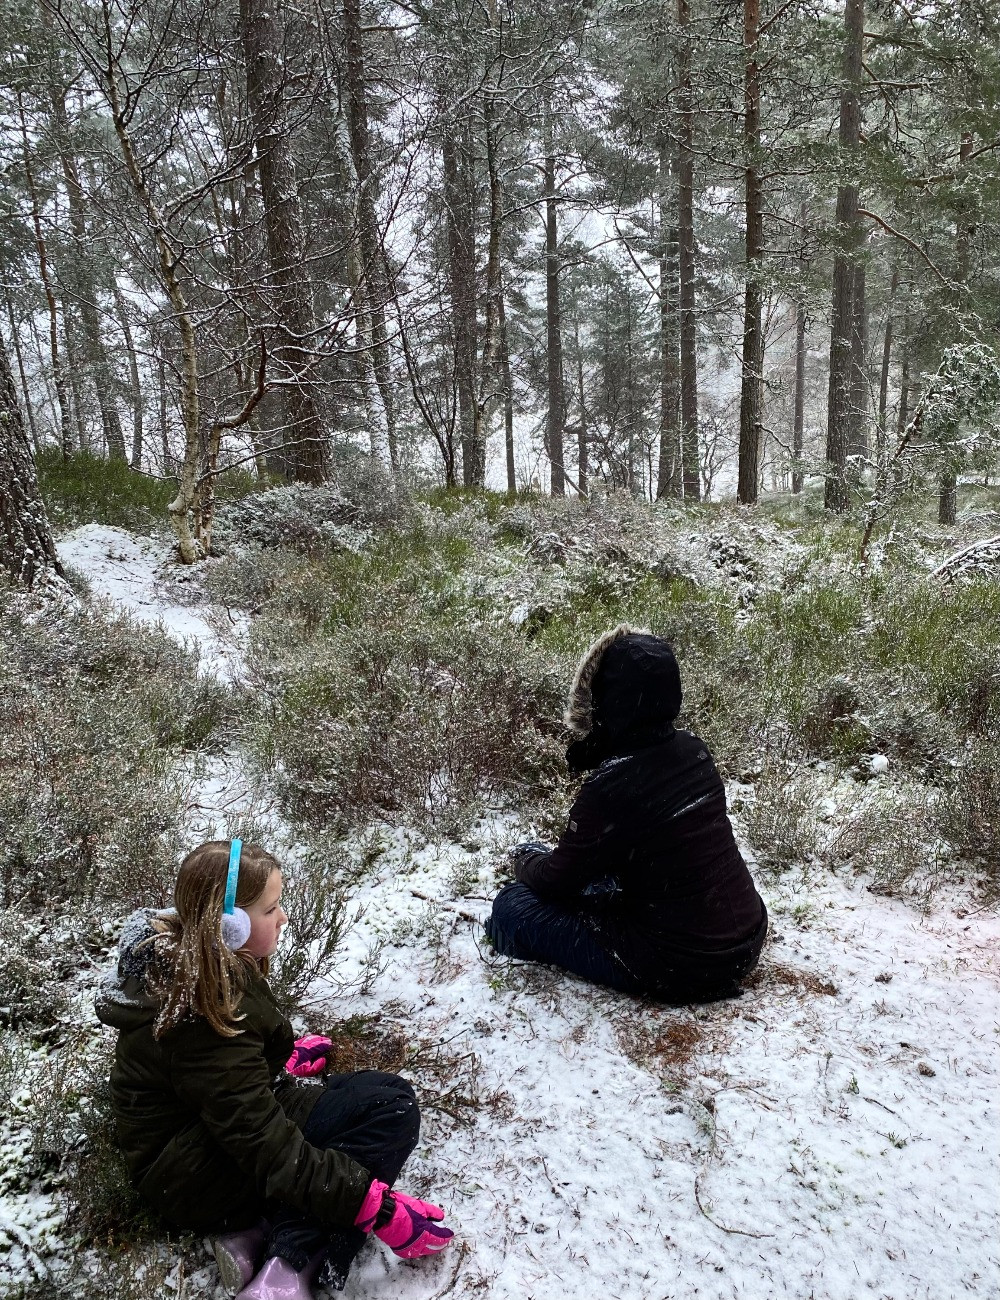 children sat in the snow in the woods